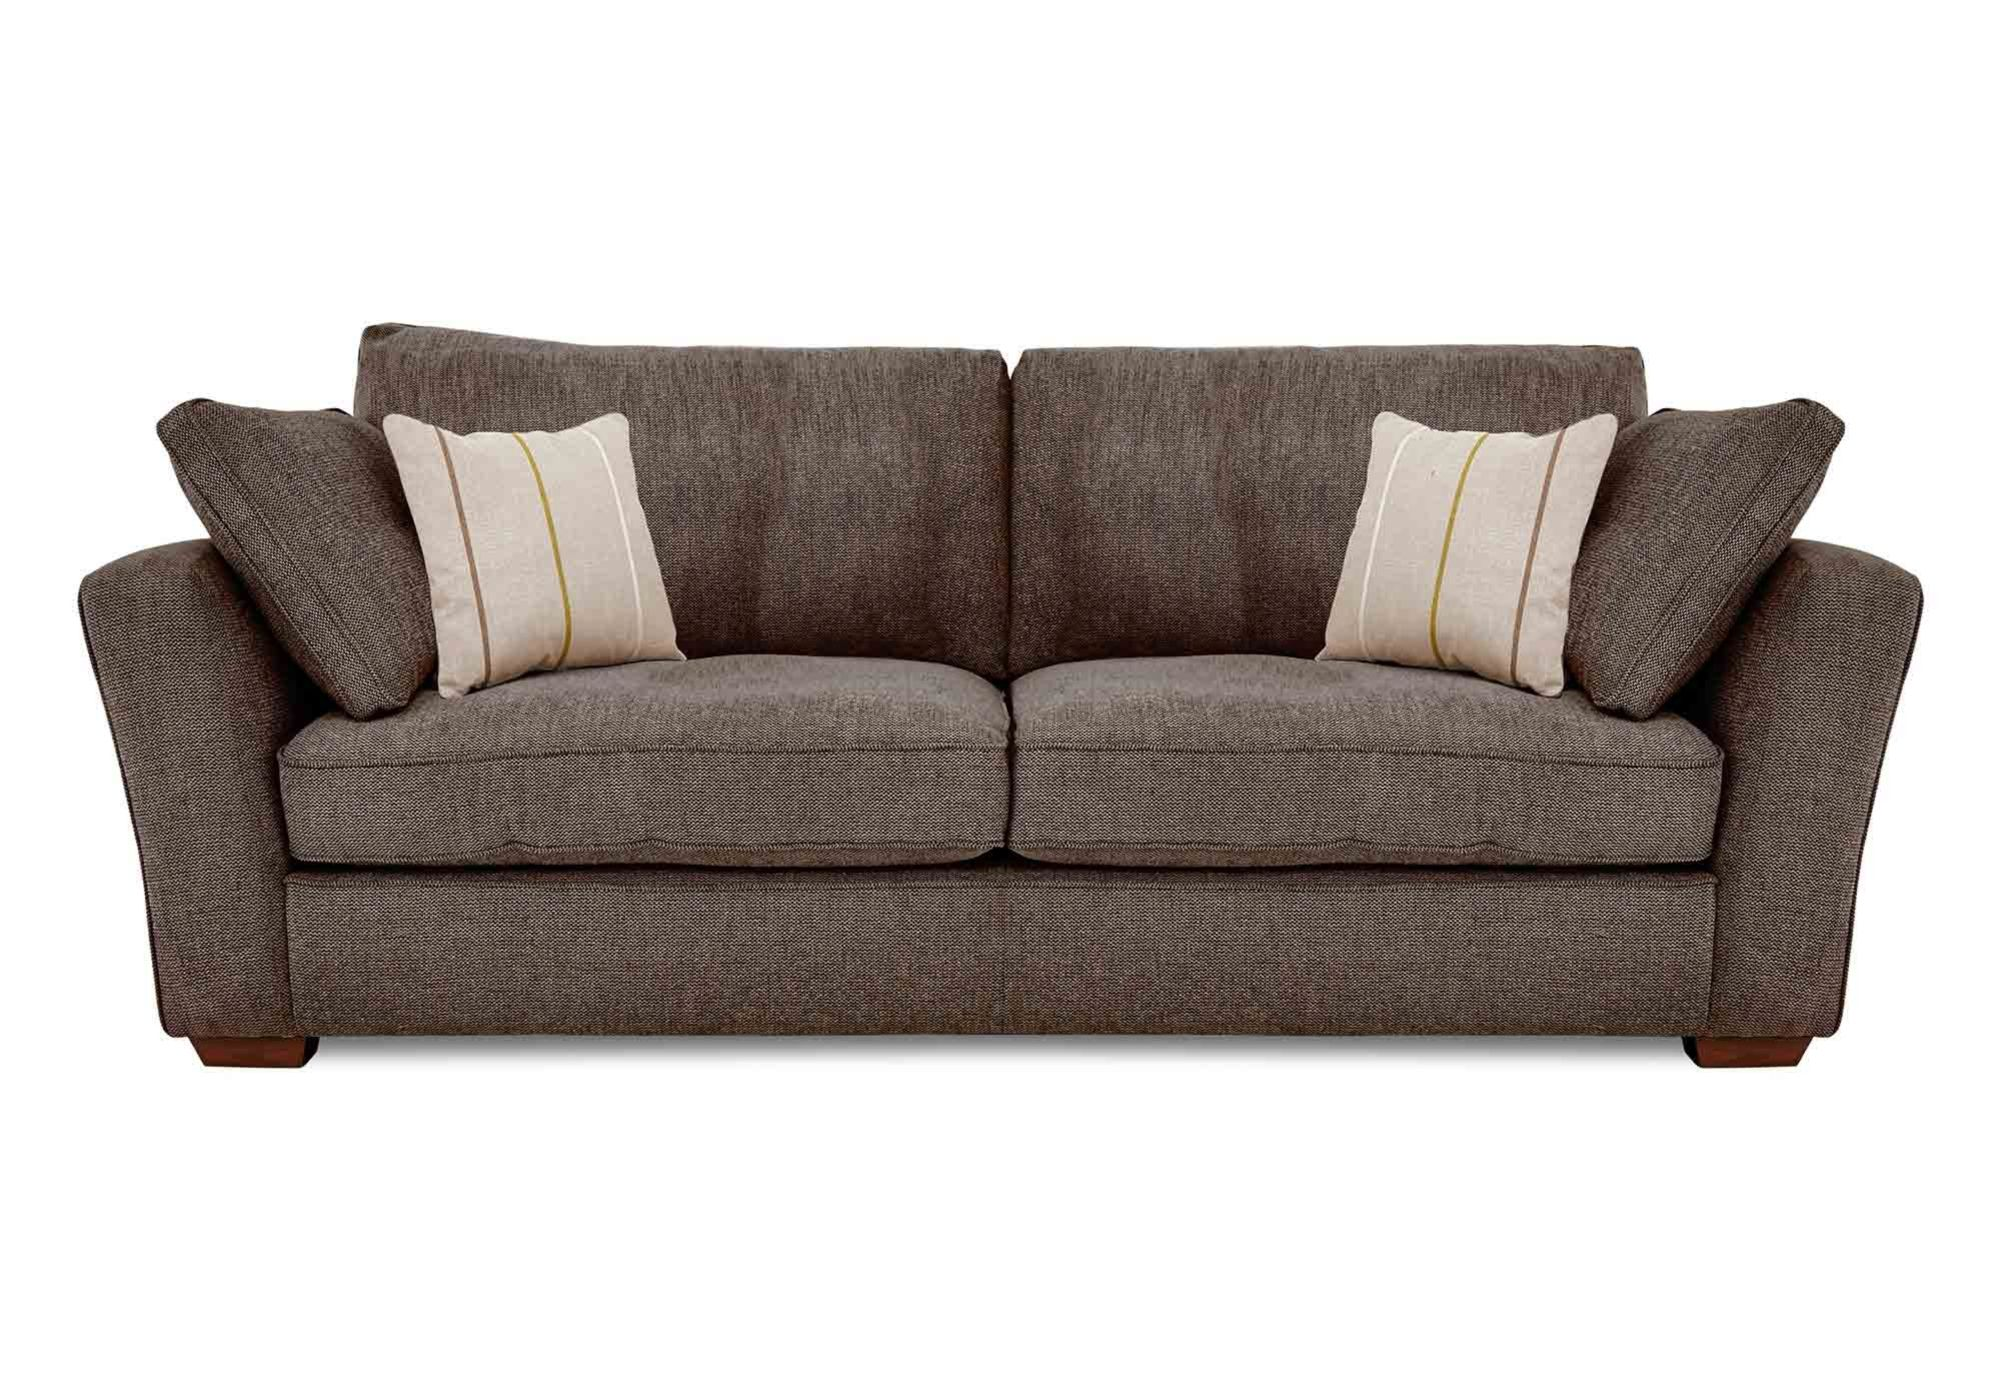 4 Seater Sofa  Otto  Gorgeous Living Room Furniture